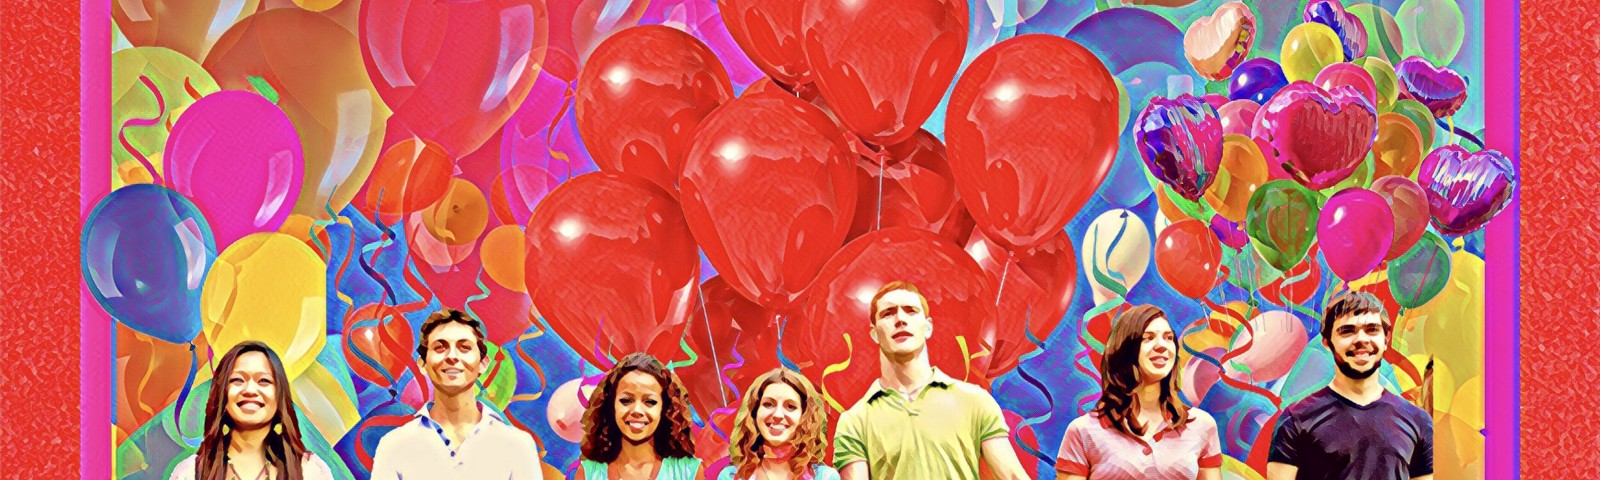 A group of young people holding hands in front of a field of balloons